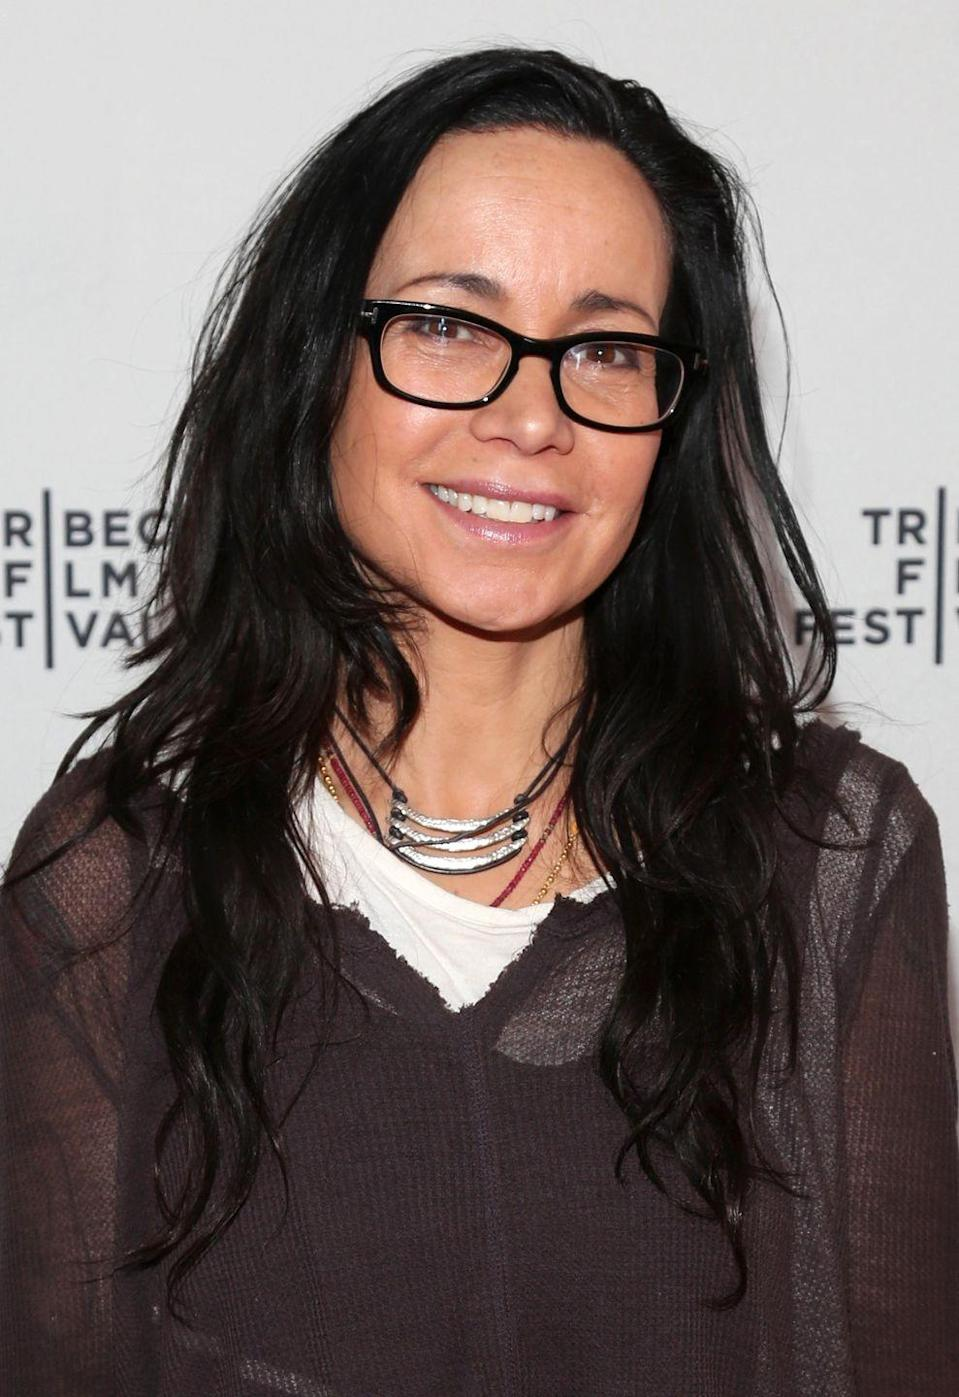 <p>Garofalo's less-than-pleasant experience at <em>SNL</em> did little to slow her career's momentum. Her continued work on <em>The Larry Sanders Show</em> earned her two Emmy nominations, and roles in movies like <em>Reality Bites</em> and <em>Wet Hot American Summer</em> established her as a cult icon. </p>